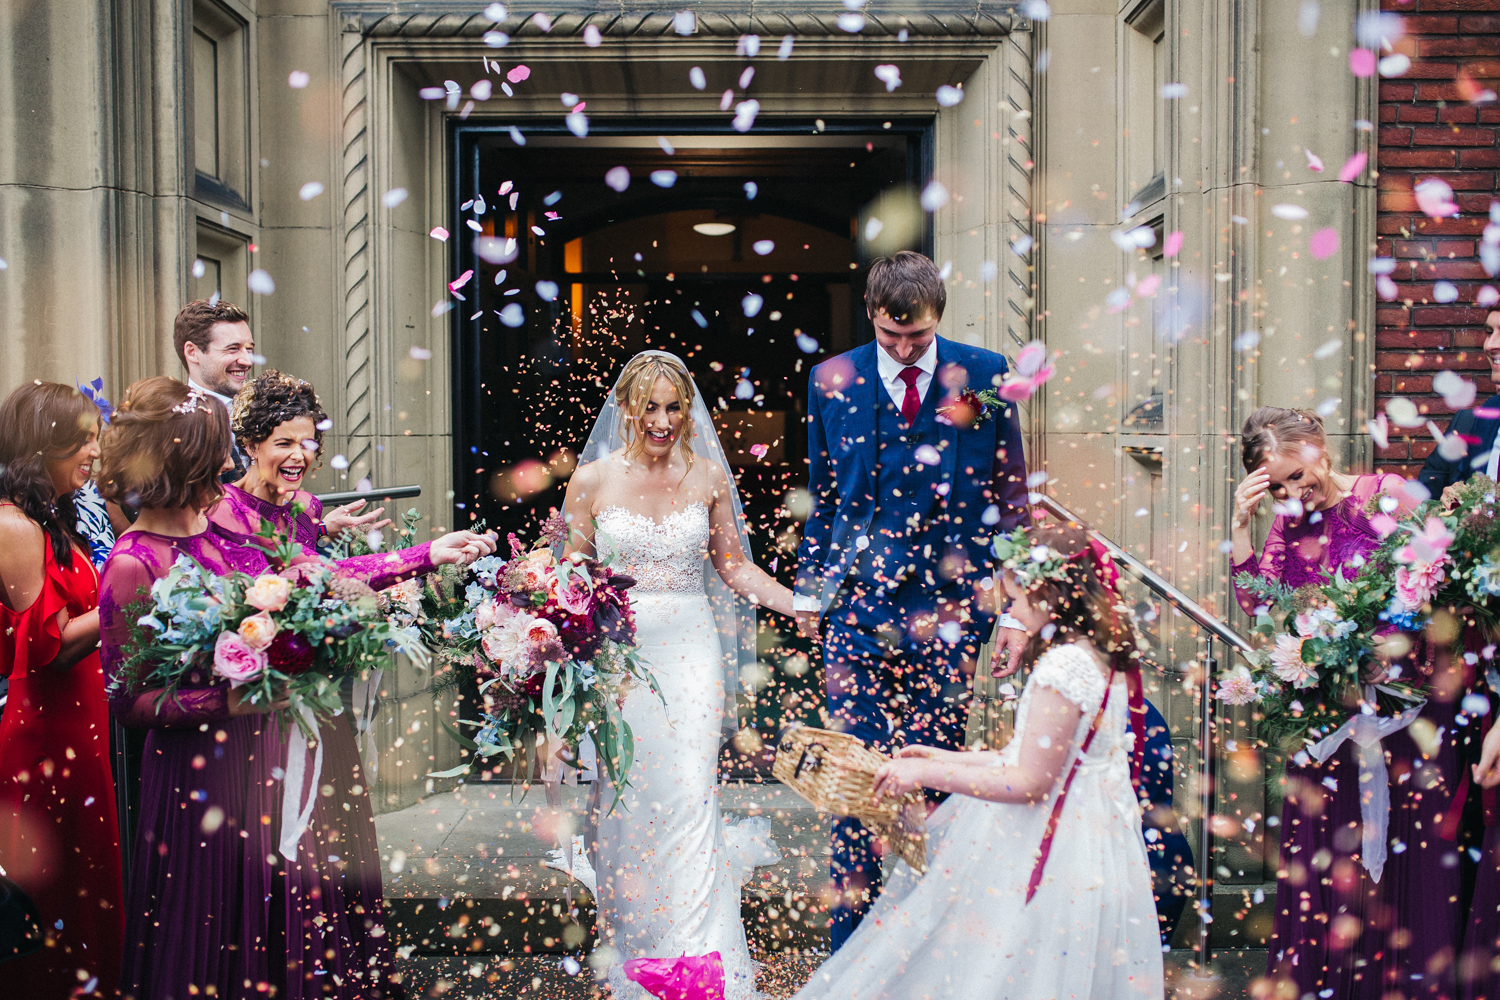 a bride and groom walk through a bright burst of confetti. ormesby hall wedding, middlesbrough. stop motion wedding films videos uk